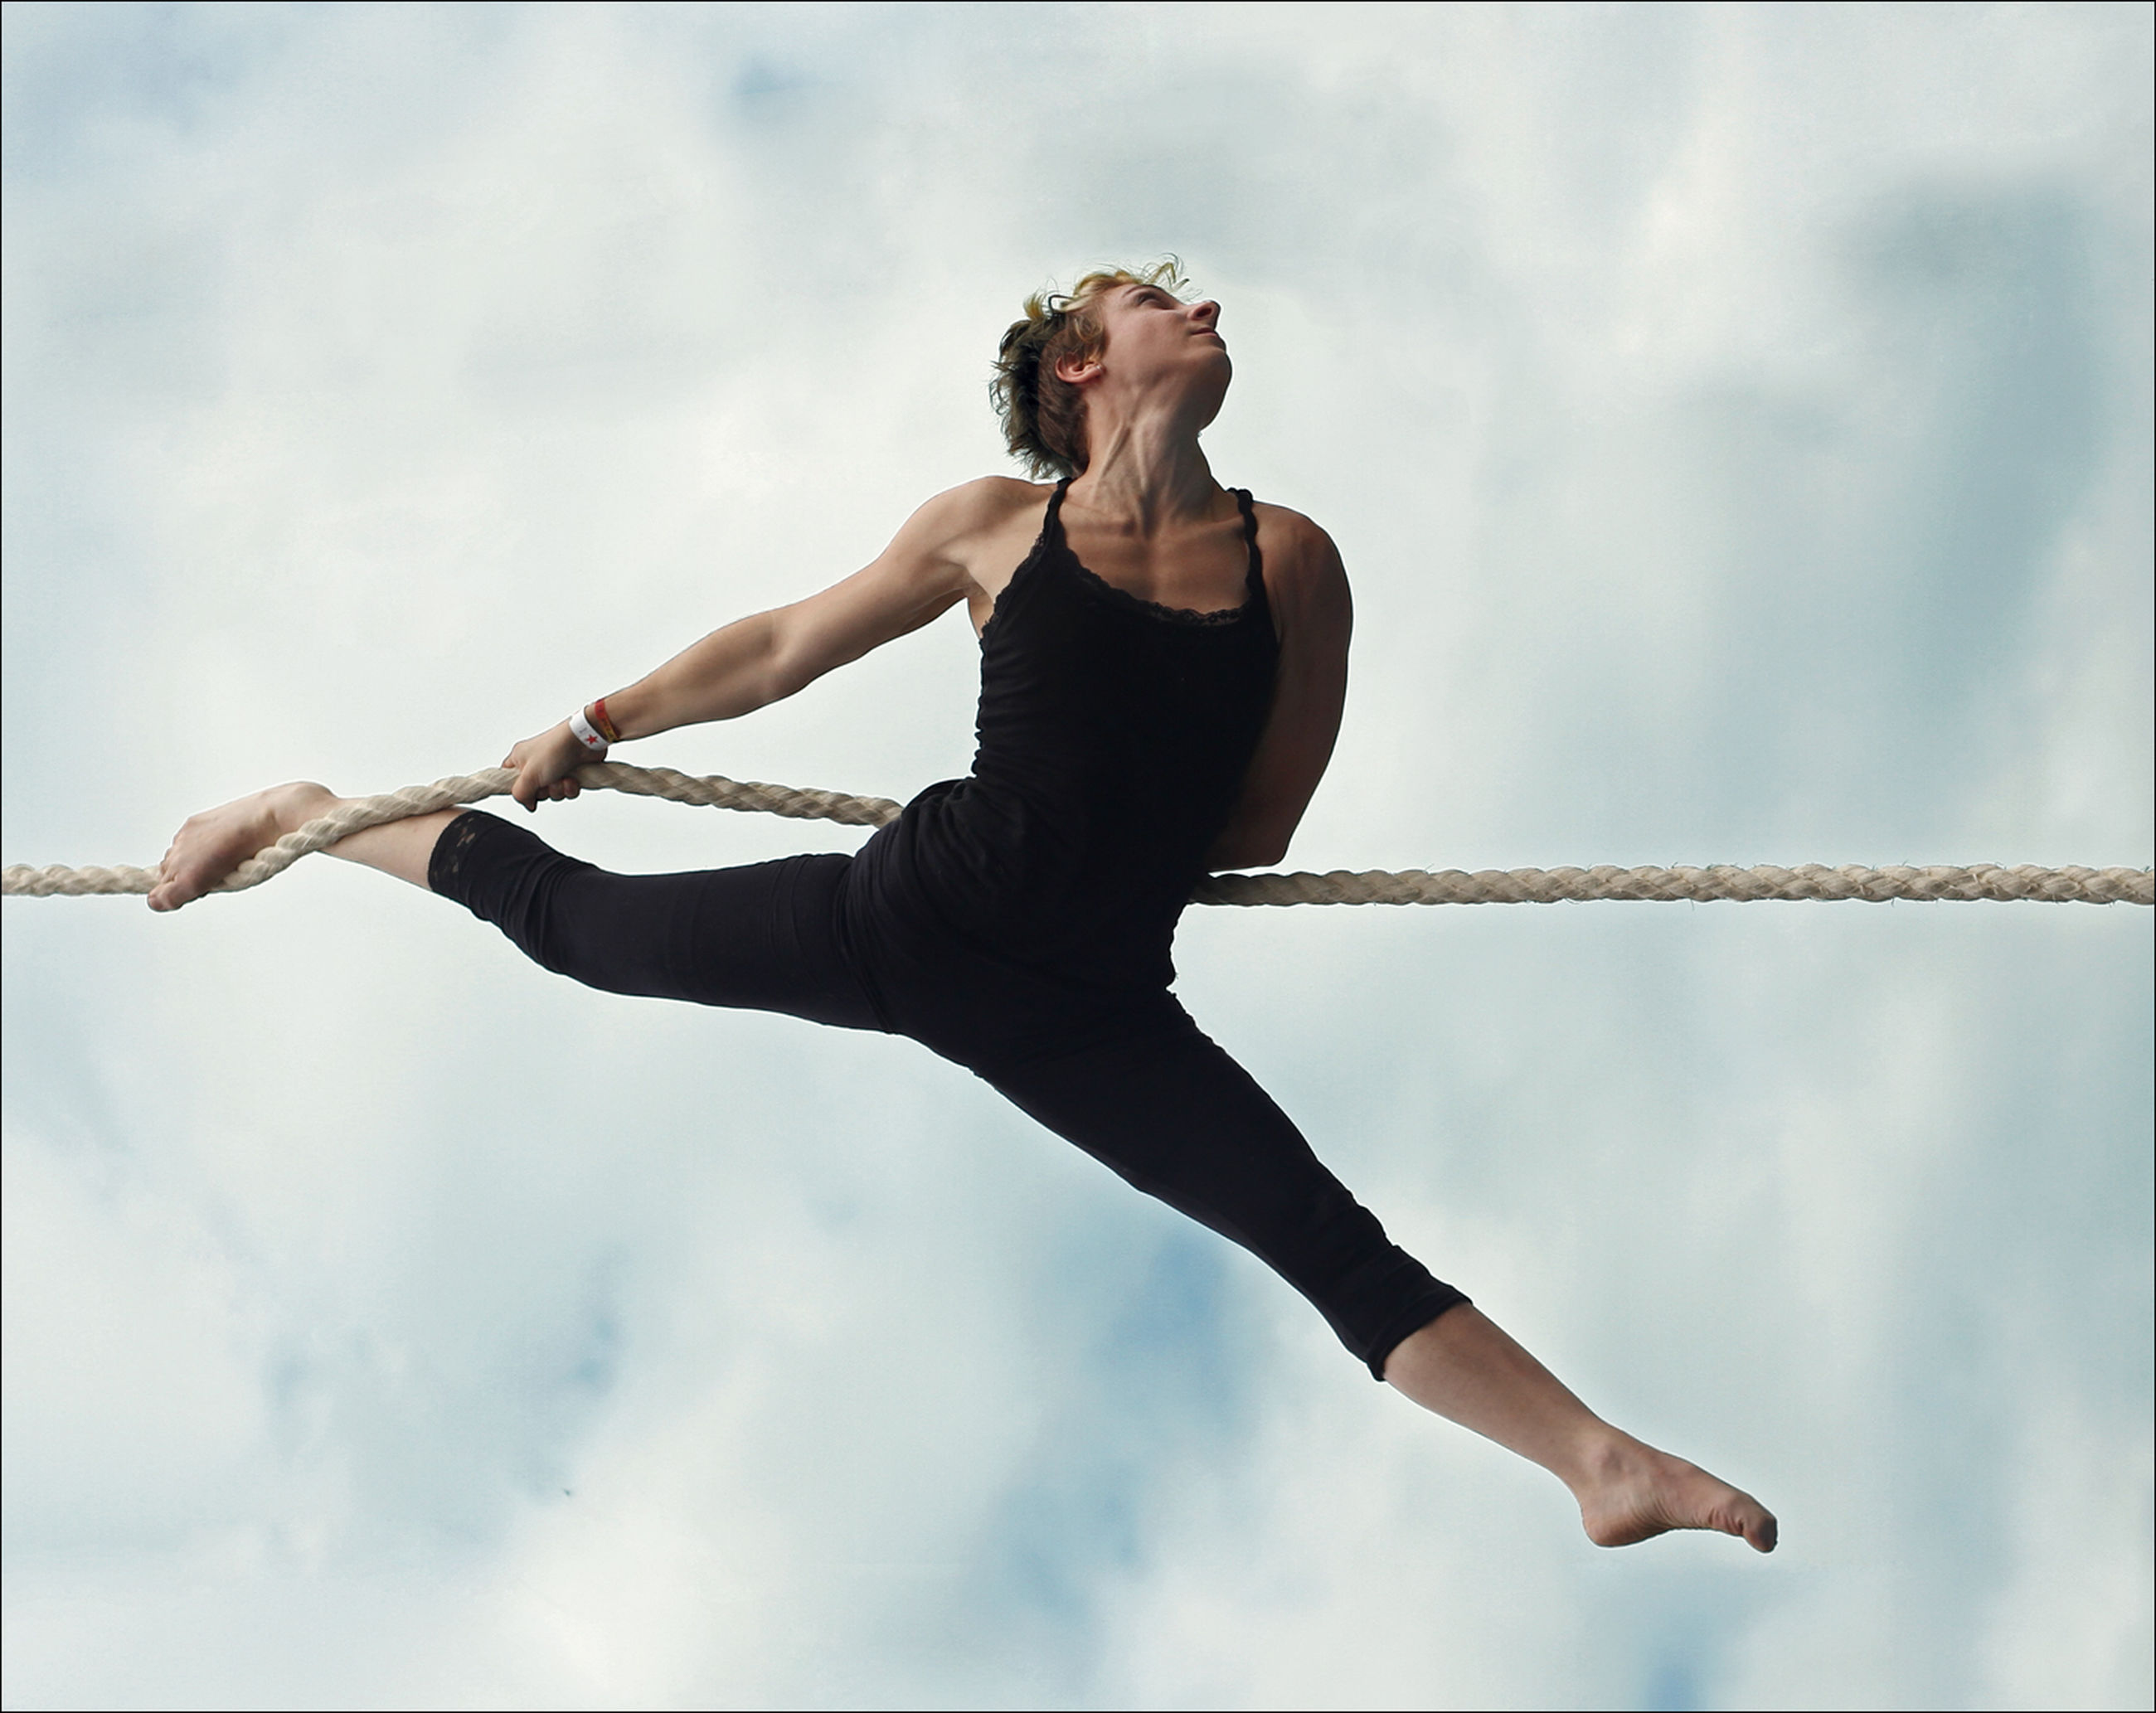 one person, cloud - sky, sky, full length, lifestyles, performance, young adult, skill, flexibility, exercising, dancing, adult, real people, low angle view, balance, practicing, day, nature, beautiful woman